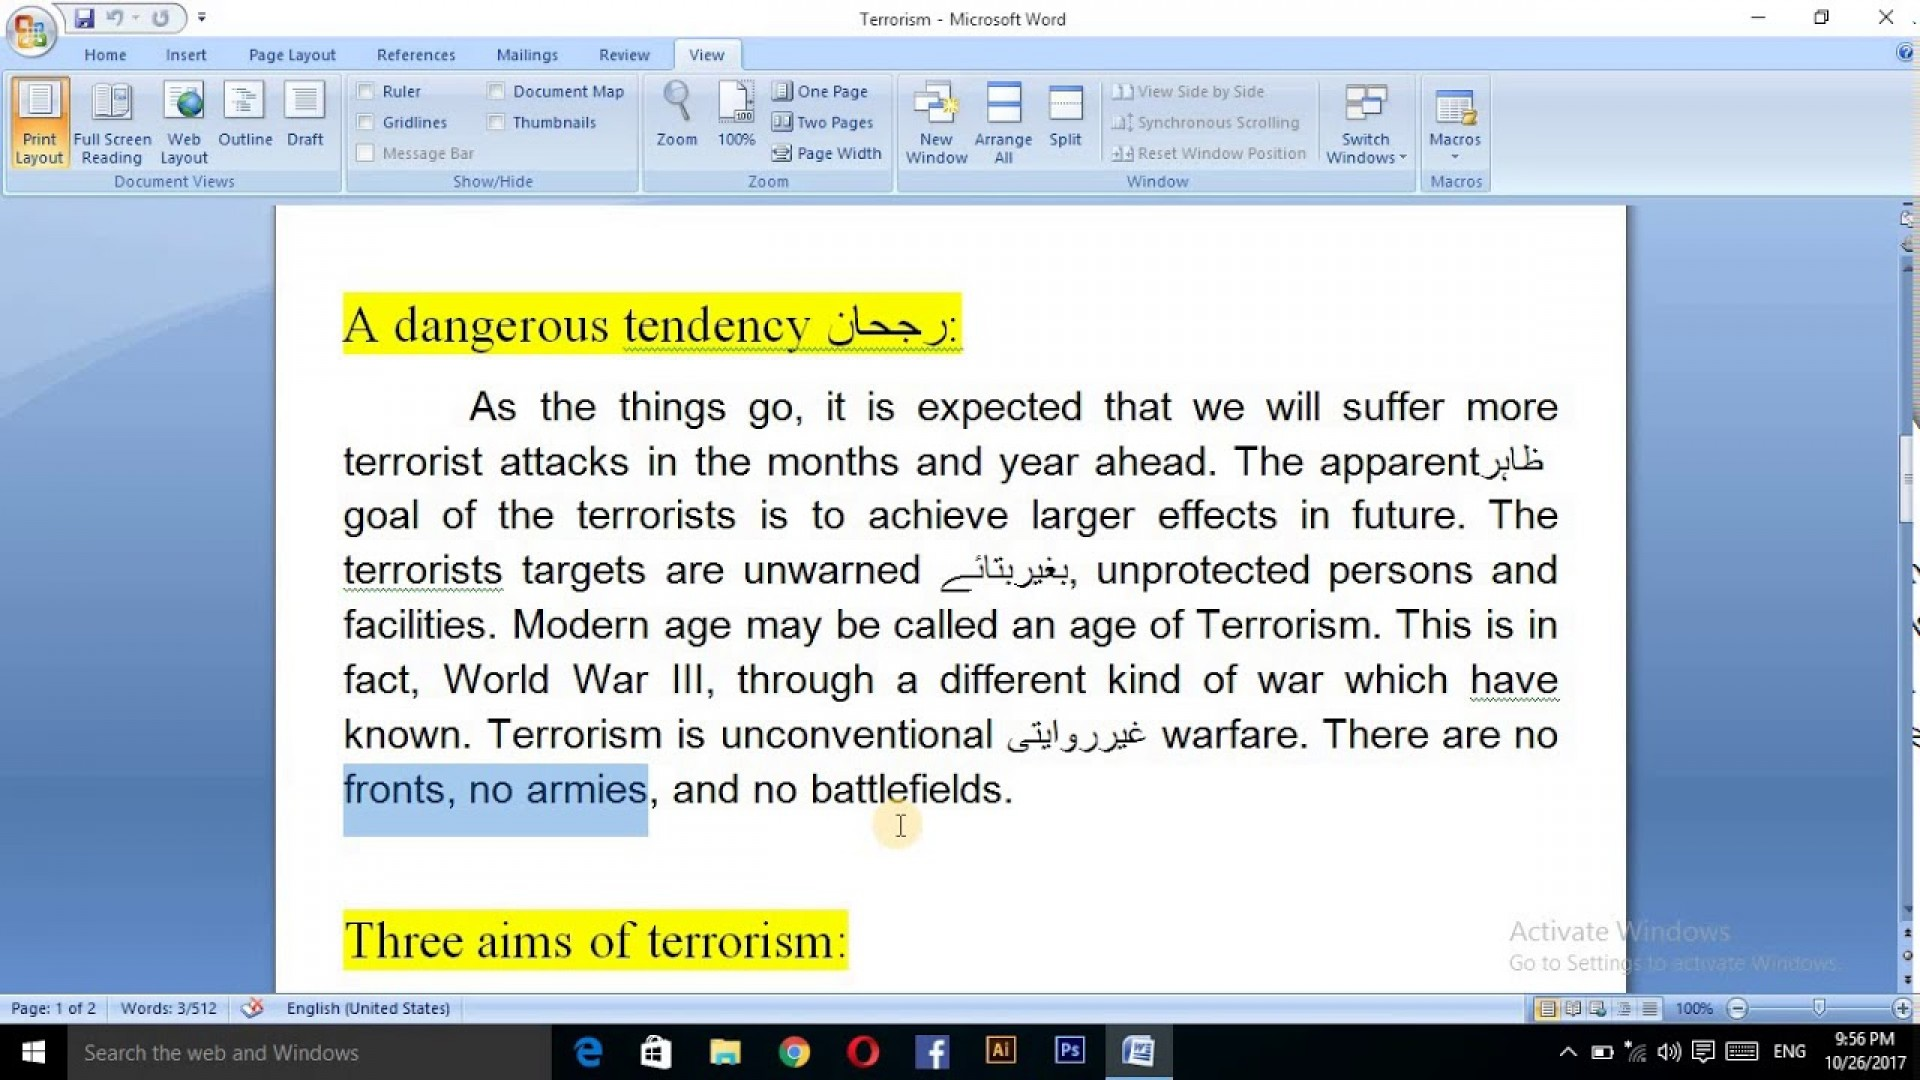 020 Terrorism Essay Example Wonderful Domestic Conclusion Questions 1920